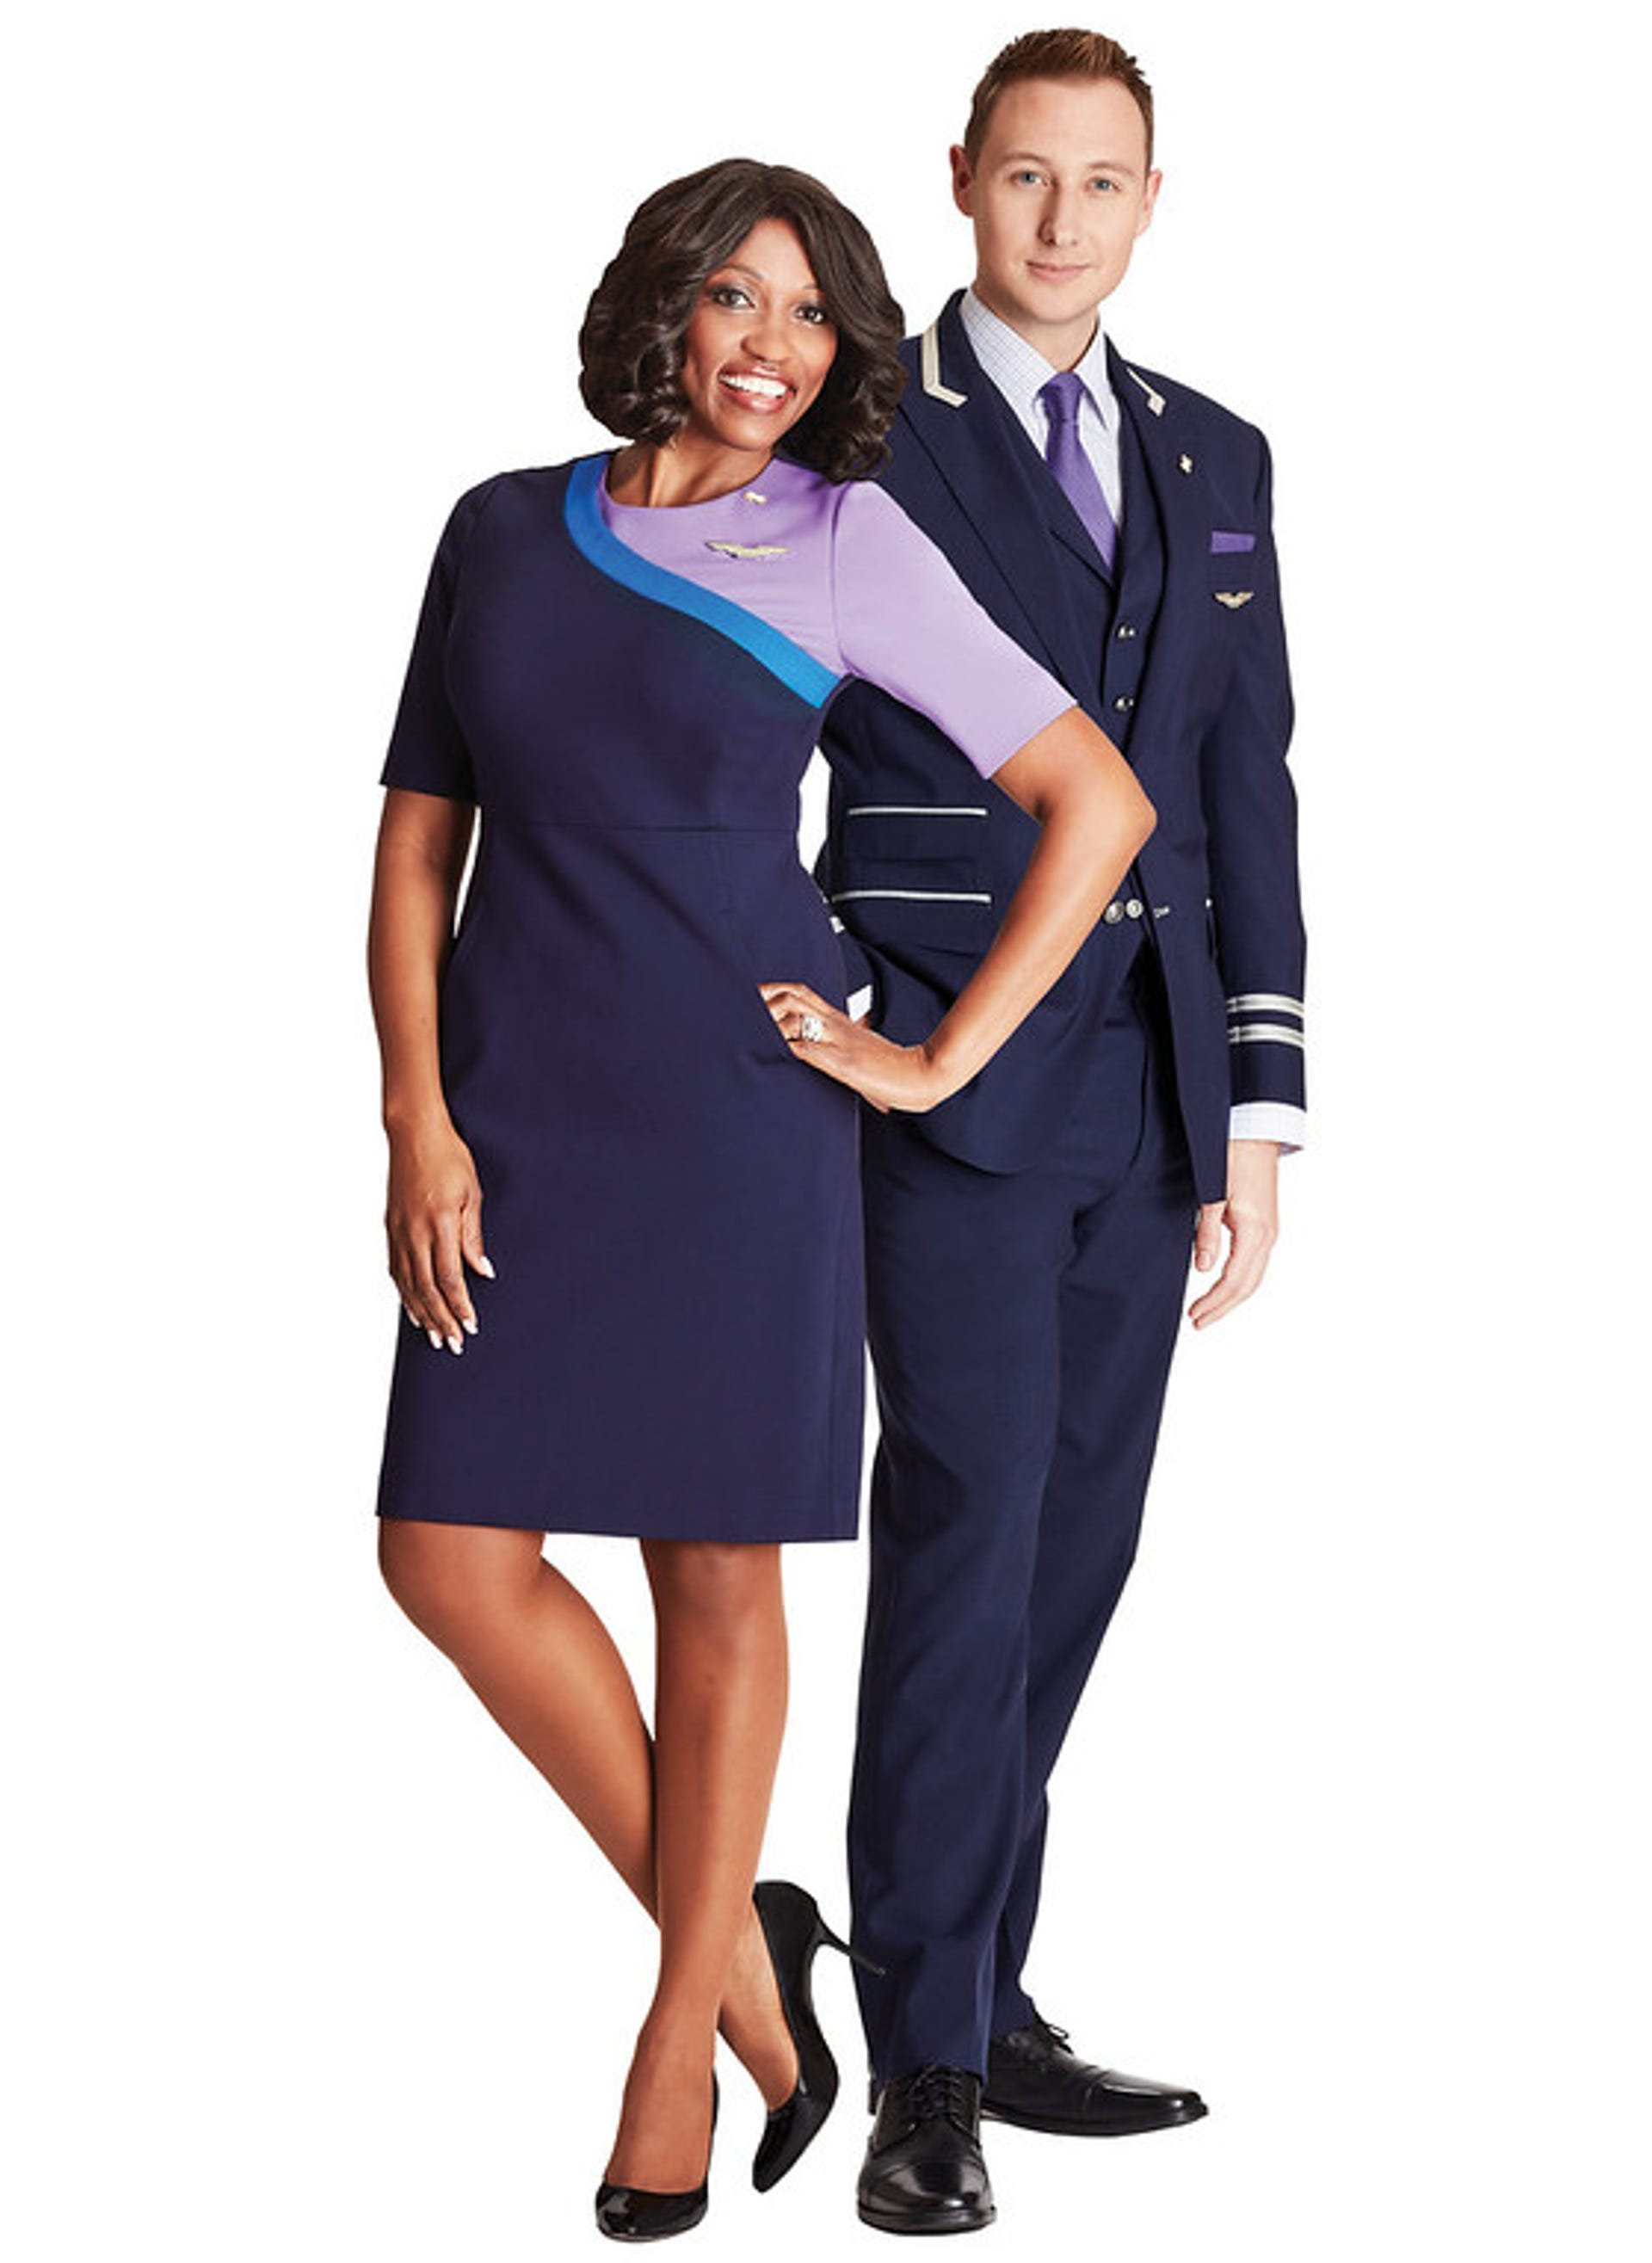 United Airlines unveils look for new employee uniforms